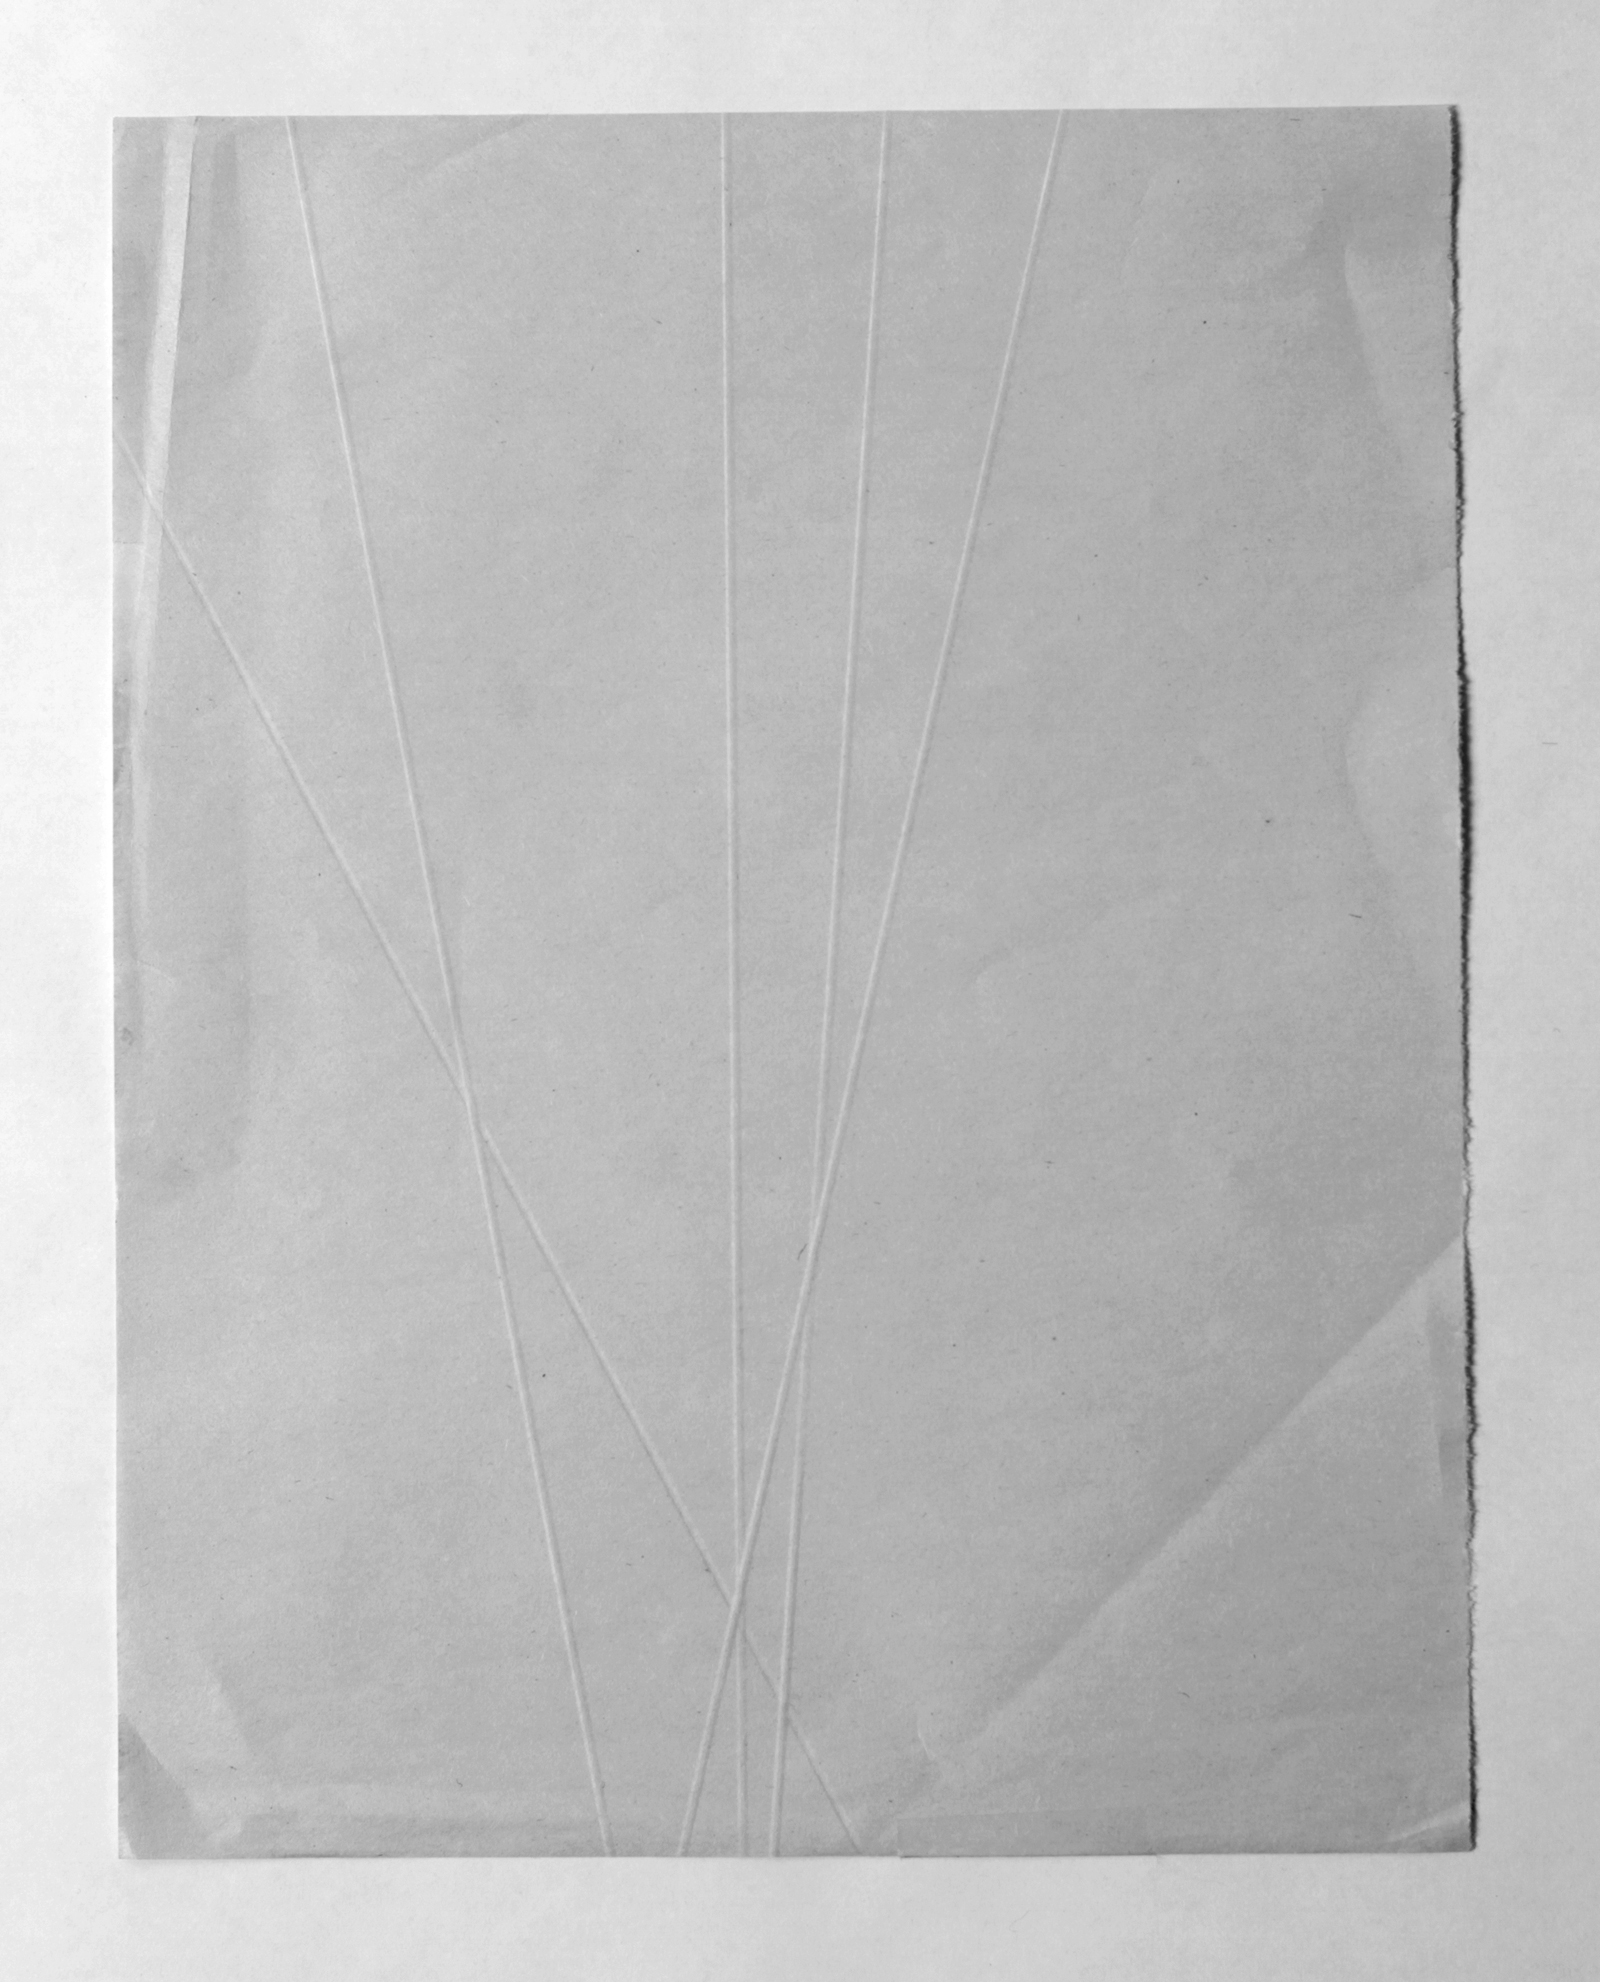 from the ongoing series: O/, Divided/Defined, Weights, Measures, and Emotional Geometry  2013, Folded newsprint. 8 x 10 inches folded